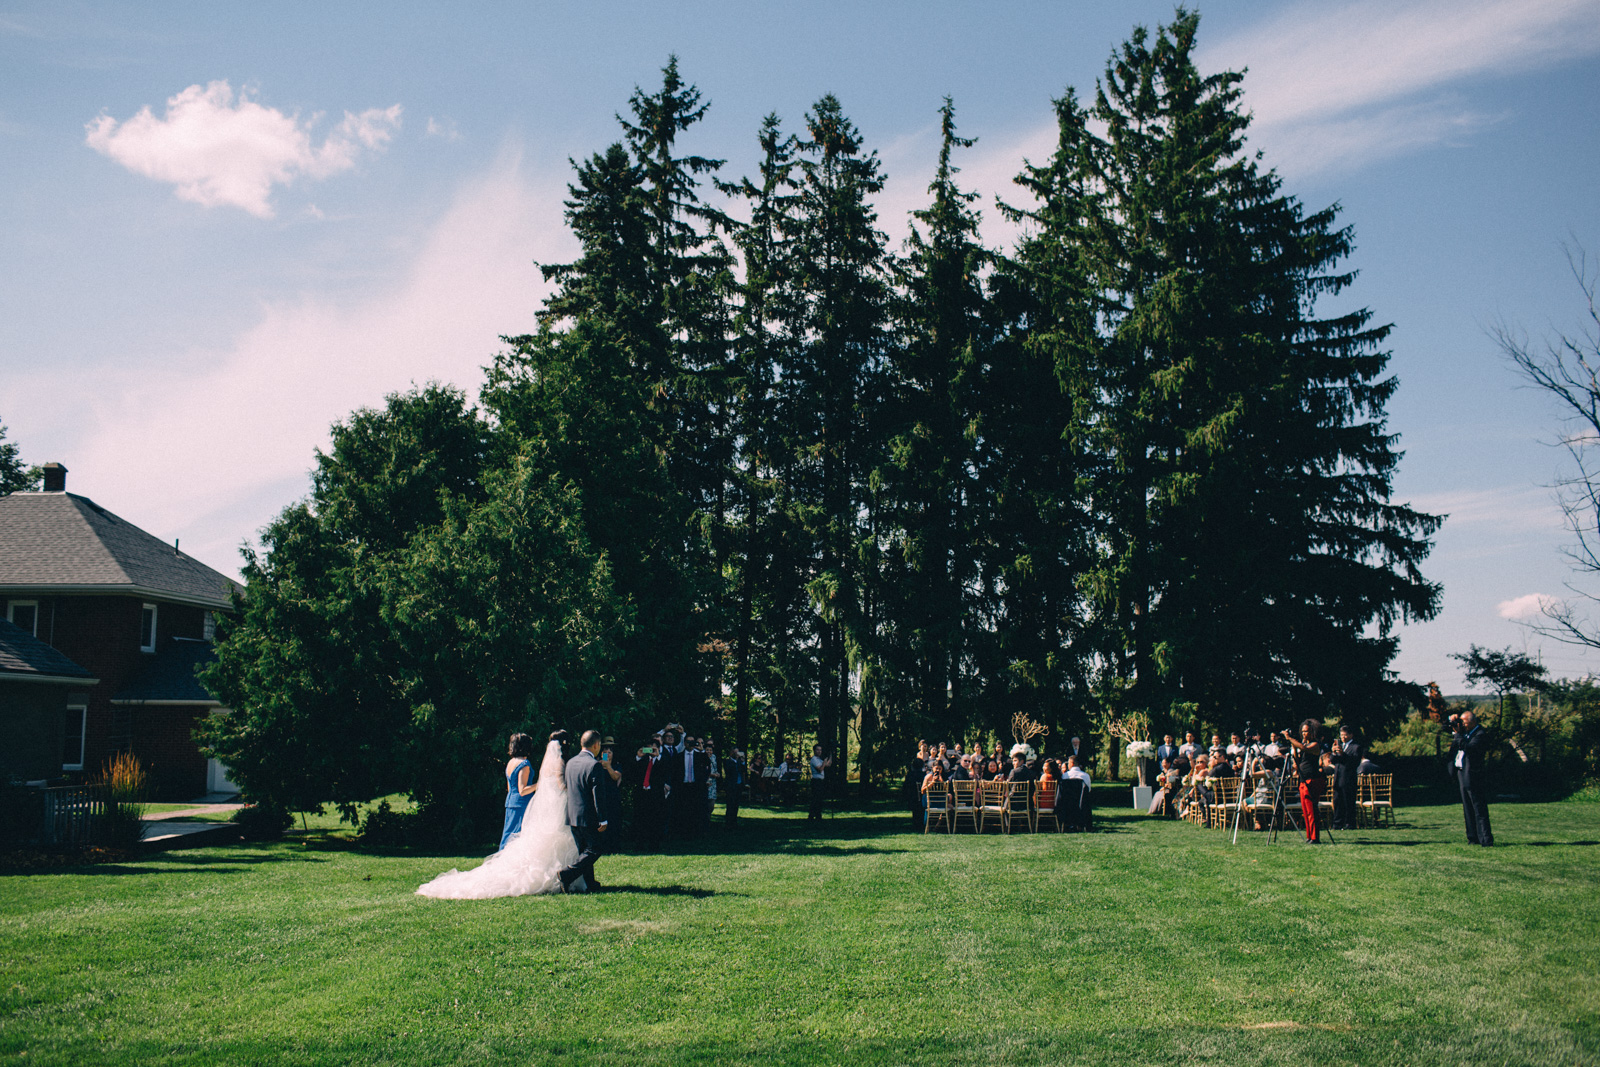 cambium-farms-wedding-photography-by-sam-wong-of-artanis-collective_35